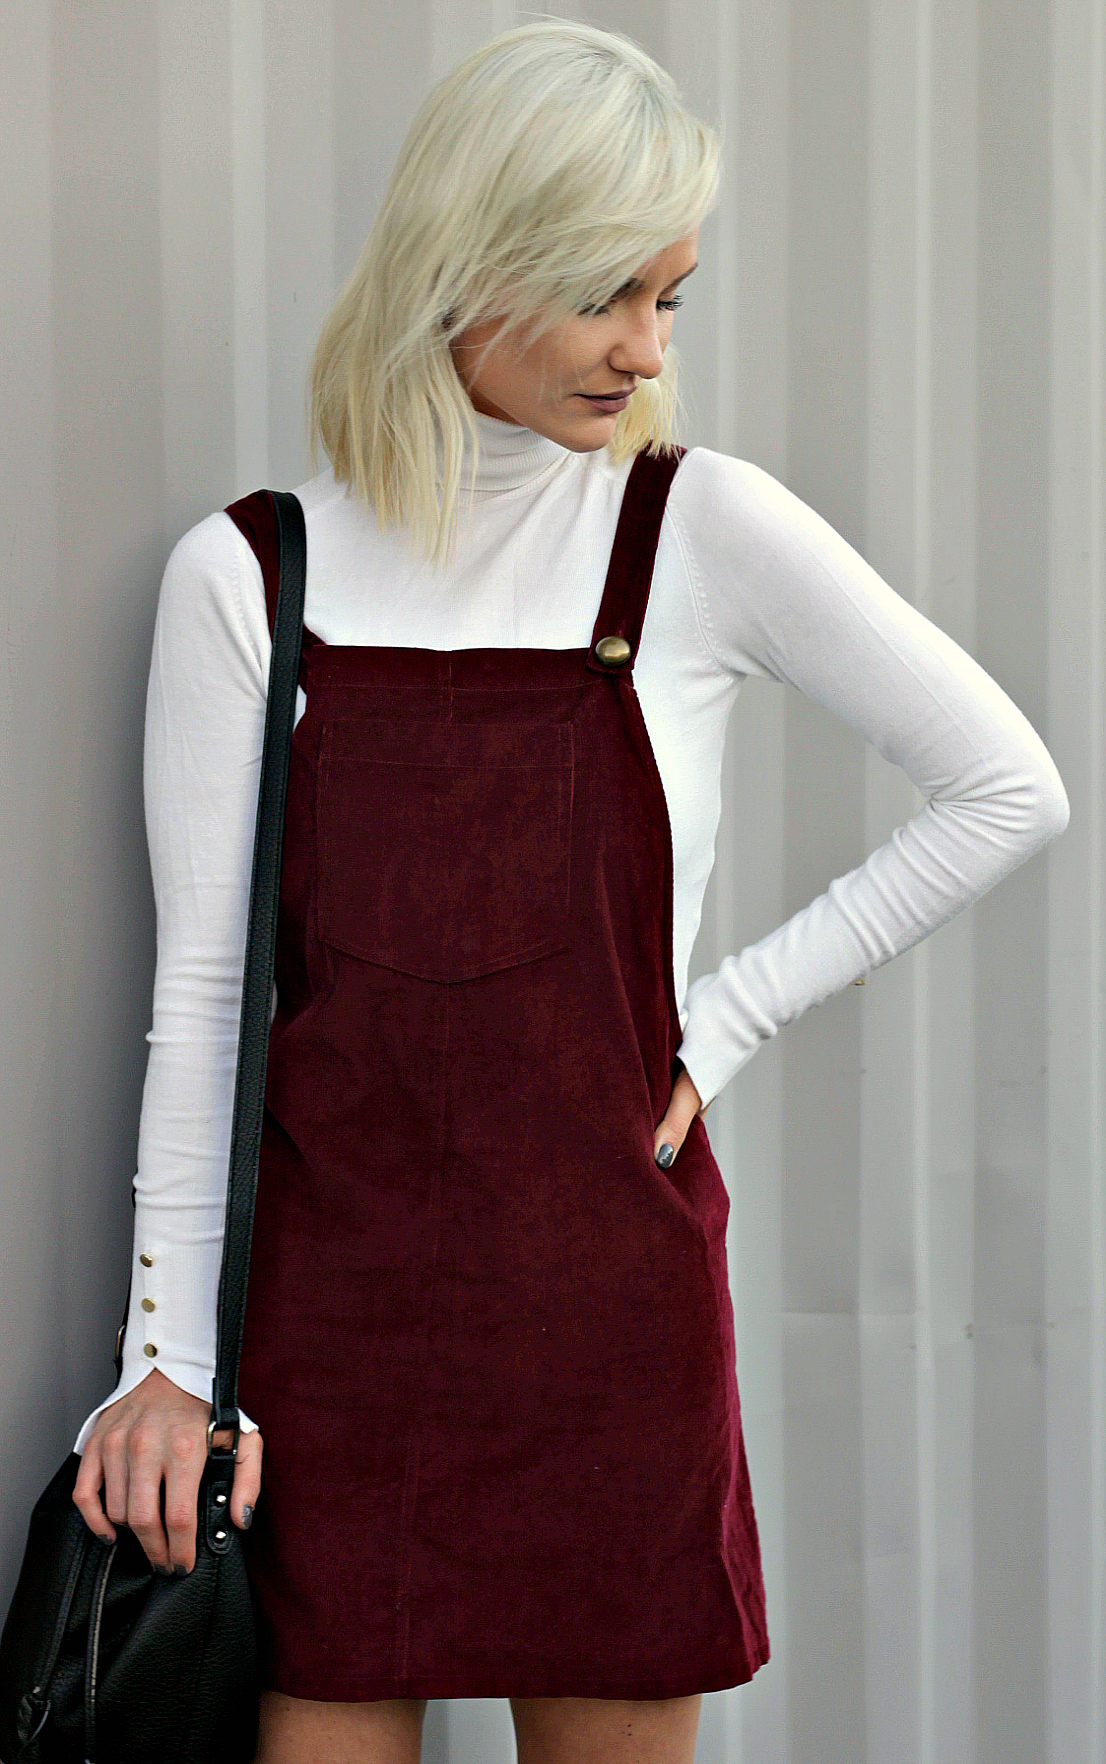 295c23dbde overall-dress-target-style-black-booties-fall-booties-bucket-bag-fall-style -the-nomis-niche-lindsey-simon-fashion-blogger-las-vegas-fashion-blogger-3